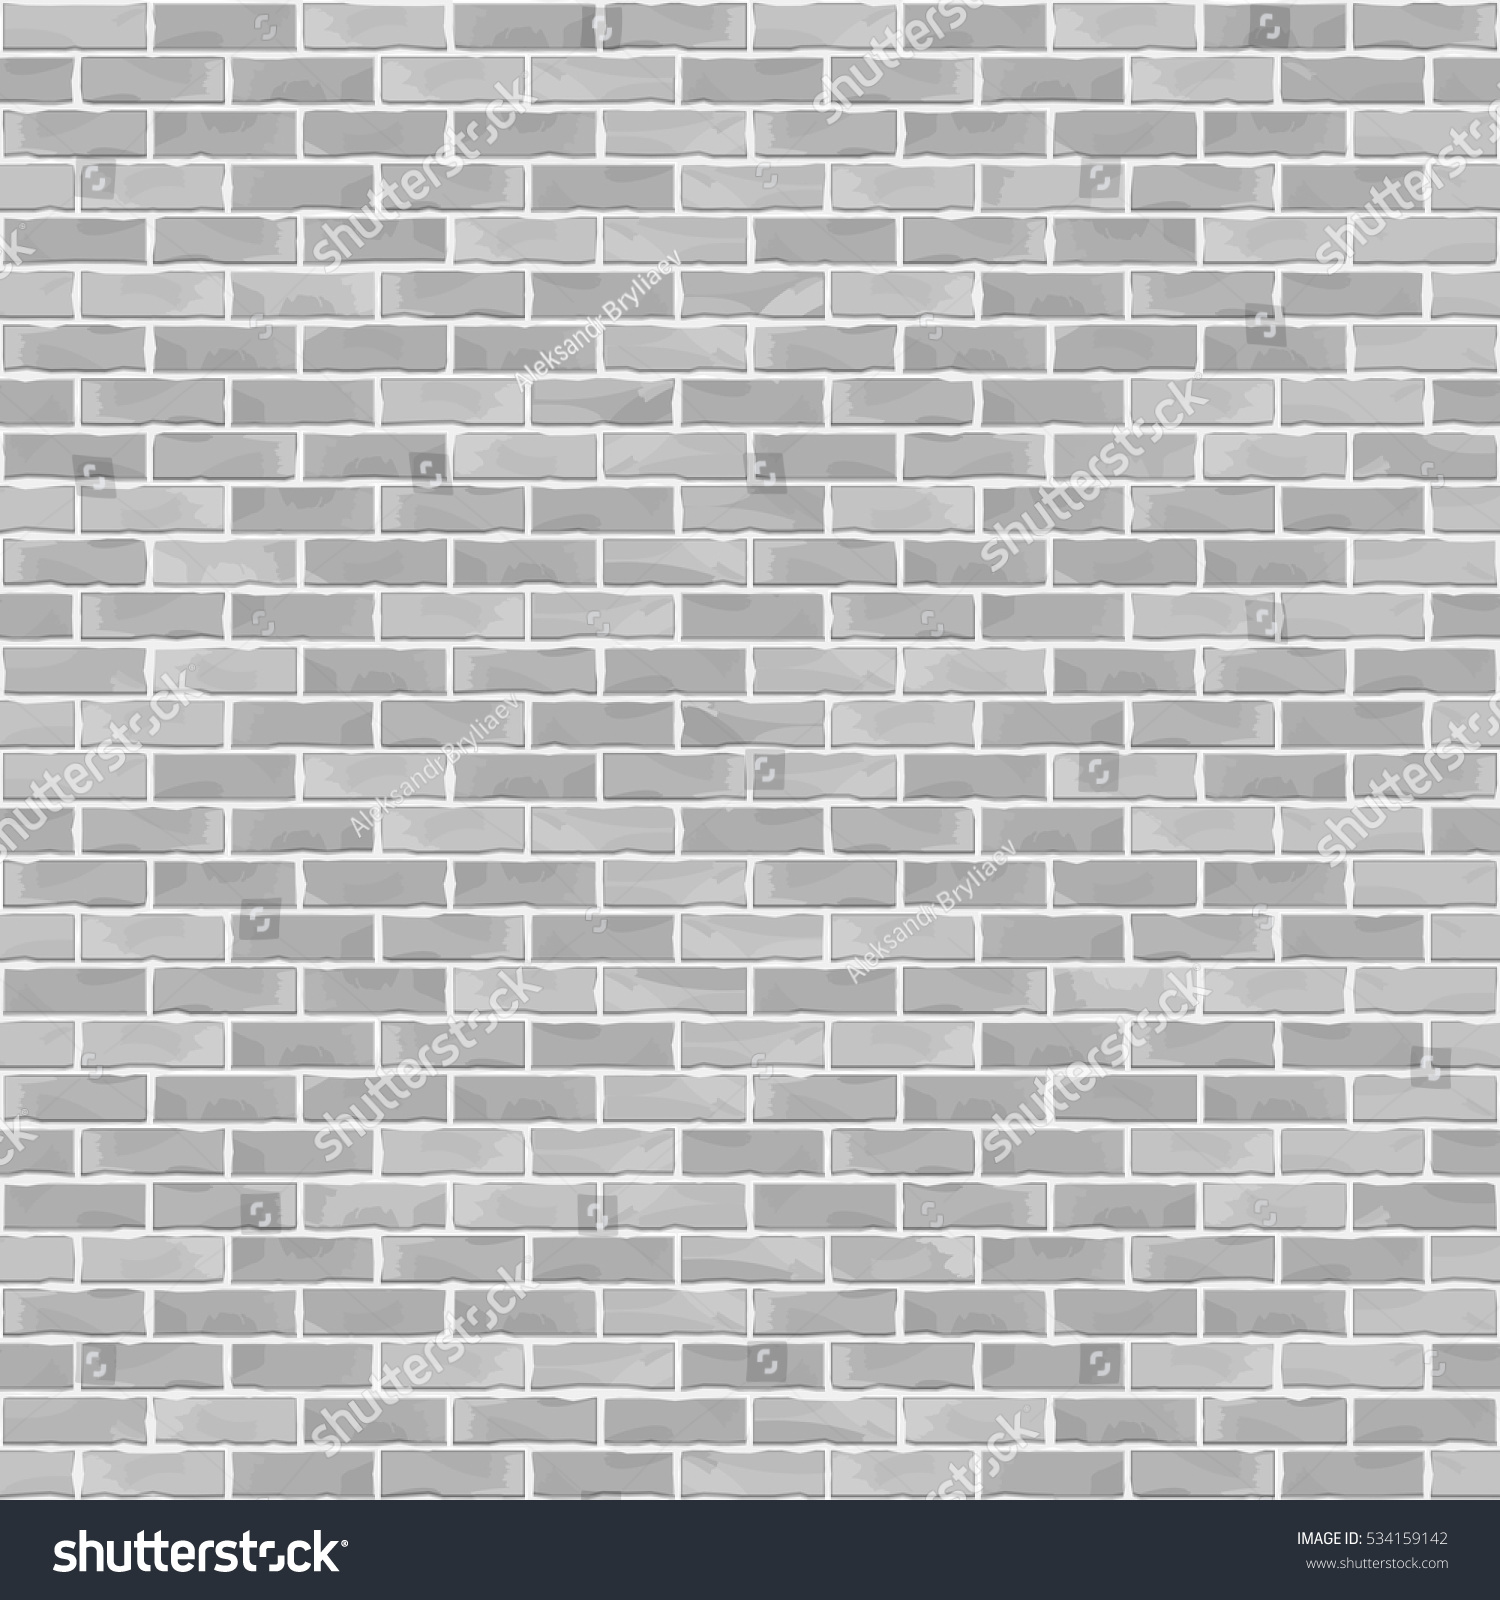 Seamless Brick Wall Background White Brick Stock Vector 534159142 ...